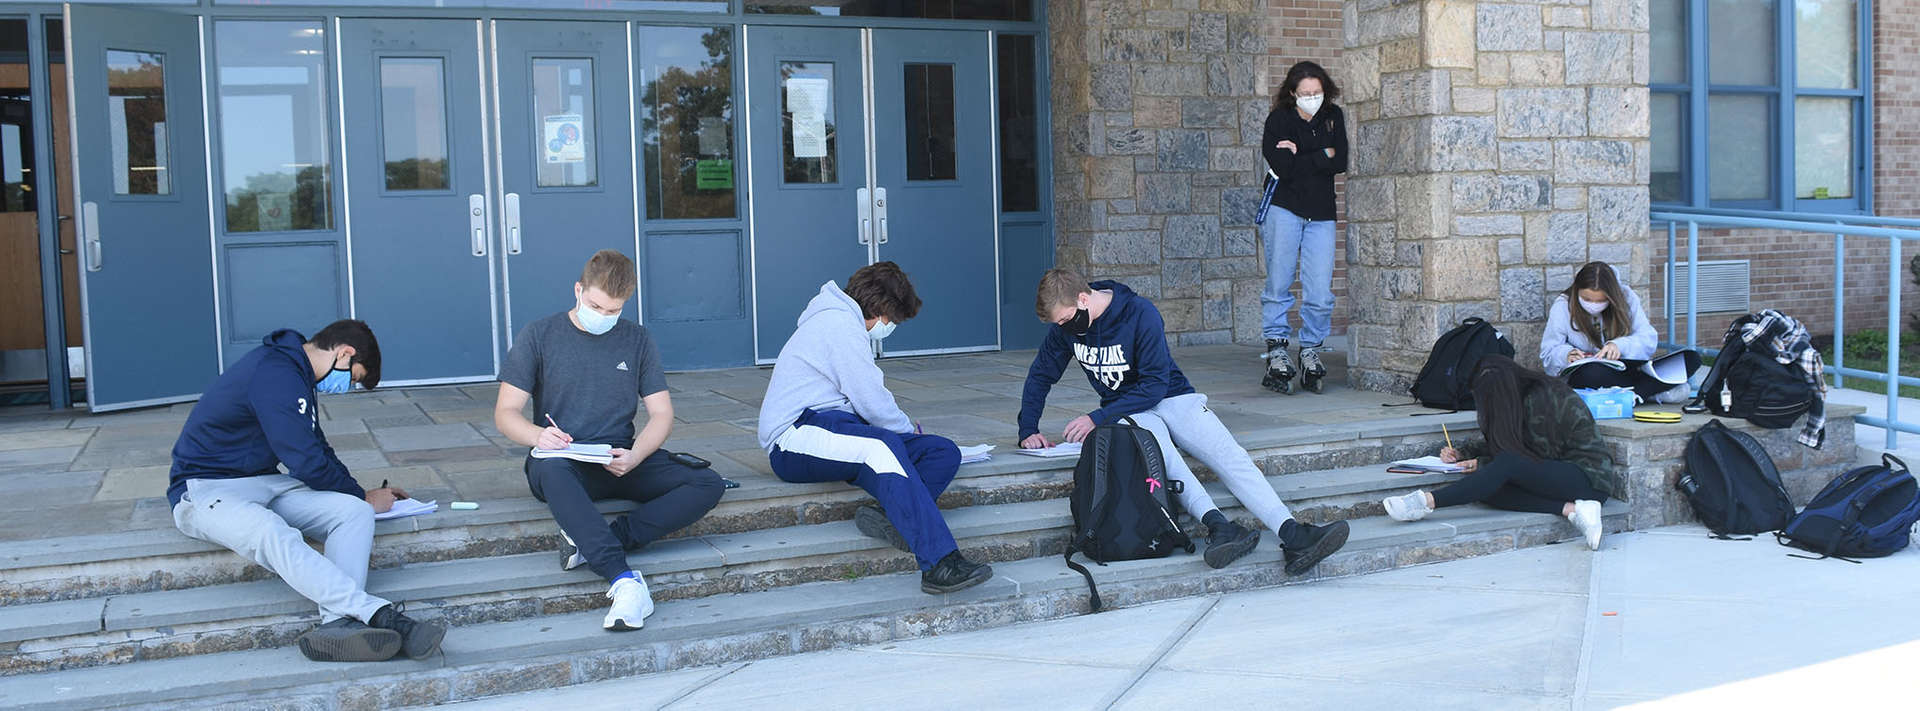 Students sit on front steps of school as teacher looks on.